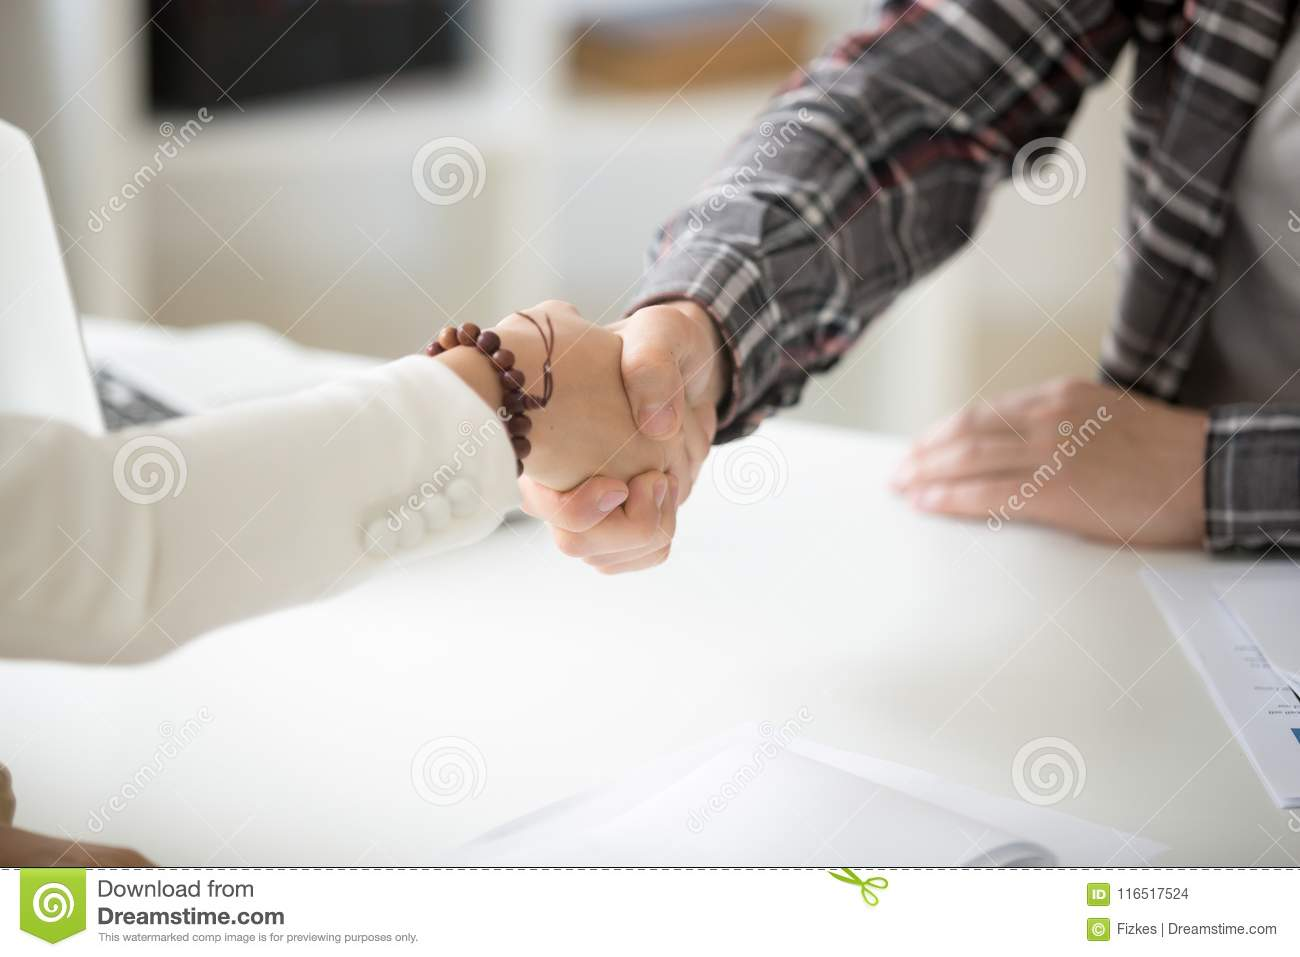 Businessman handshaking businesswoman making deal or showing res